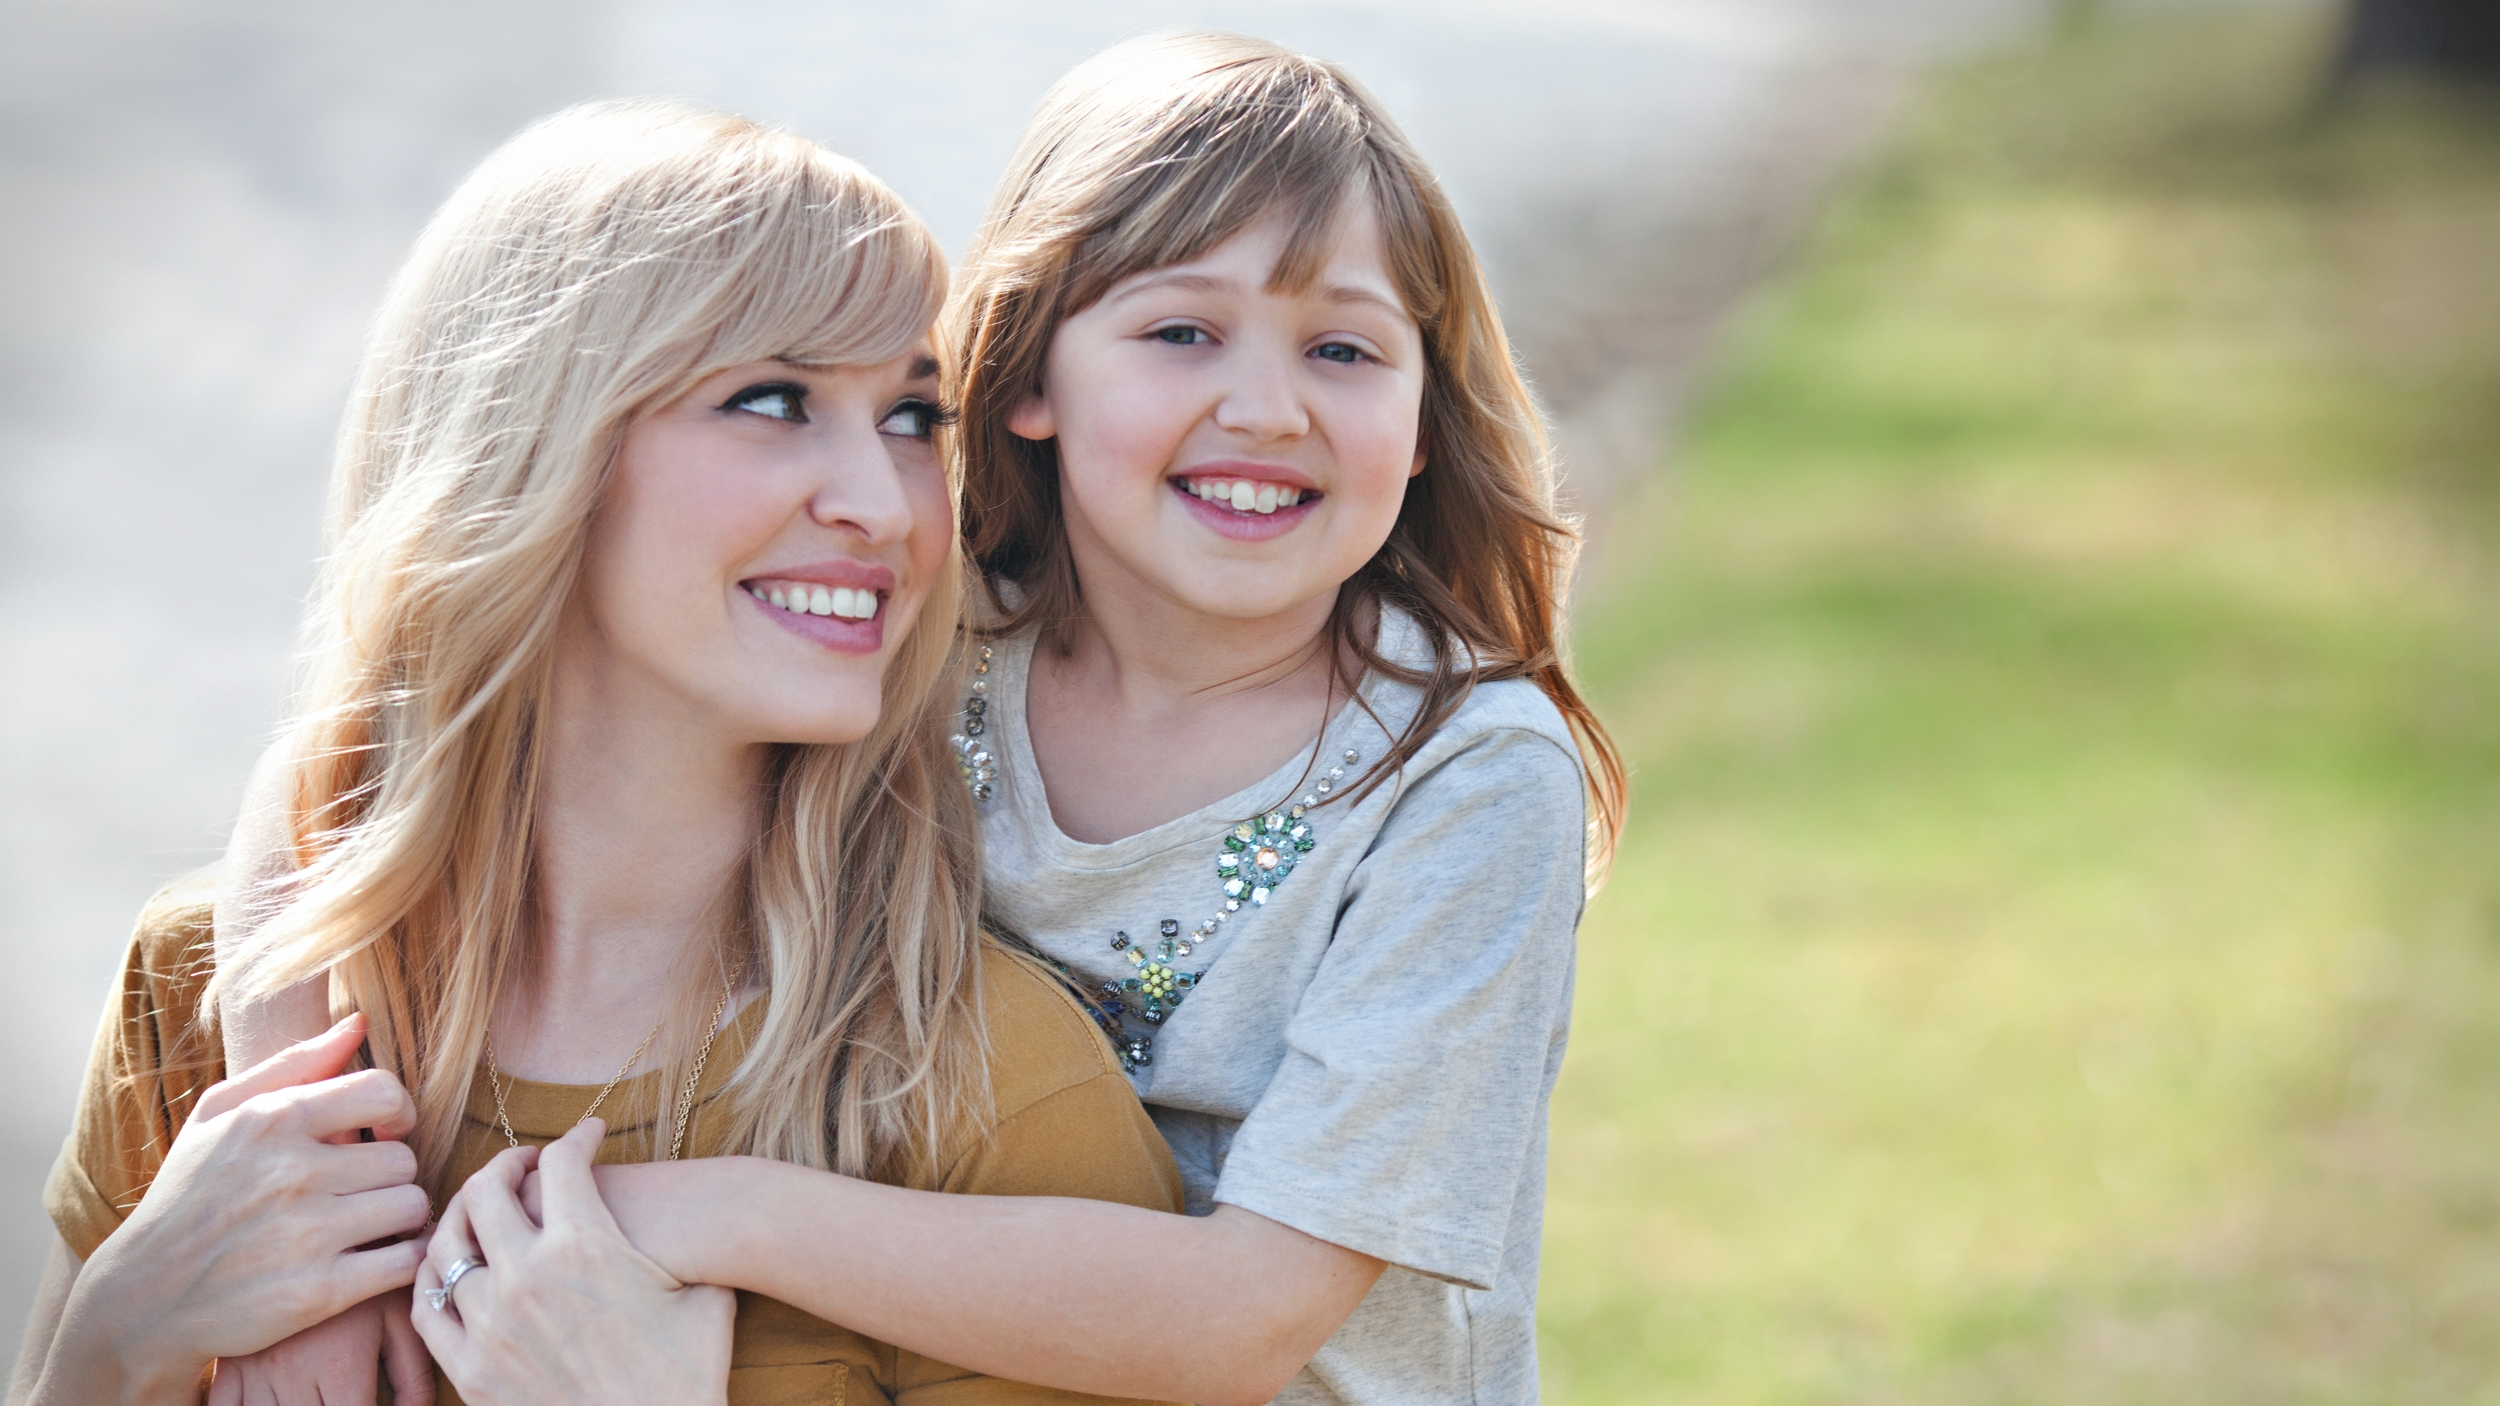 stacy Kinzler and her daughter, Mabry, have had a truly remarkable journey